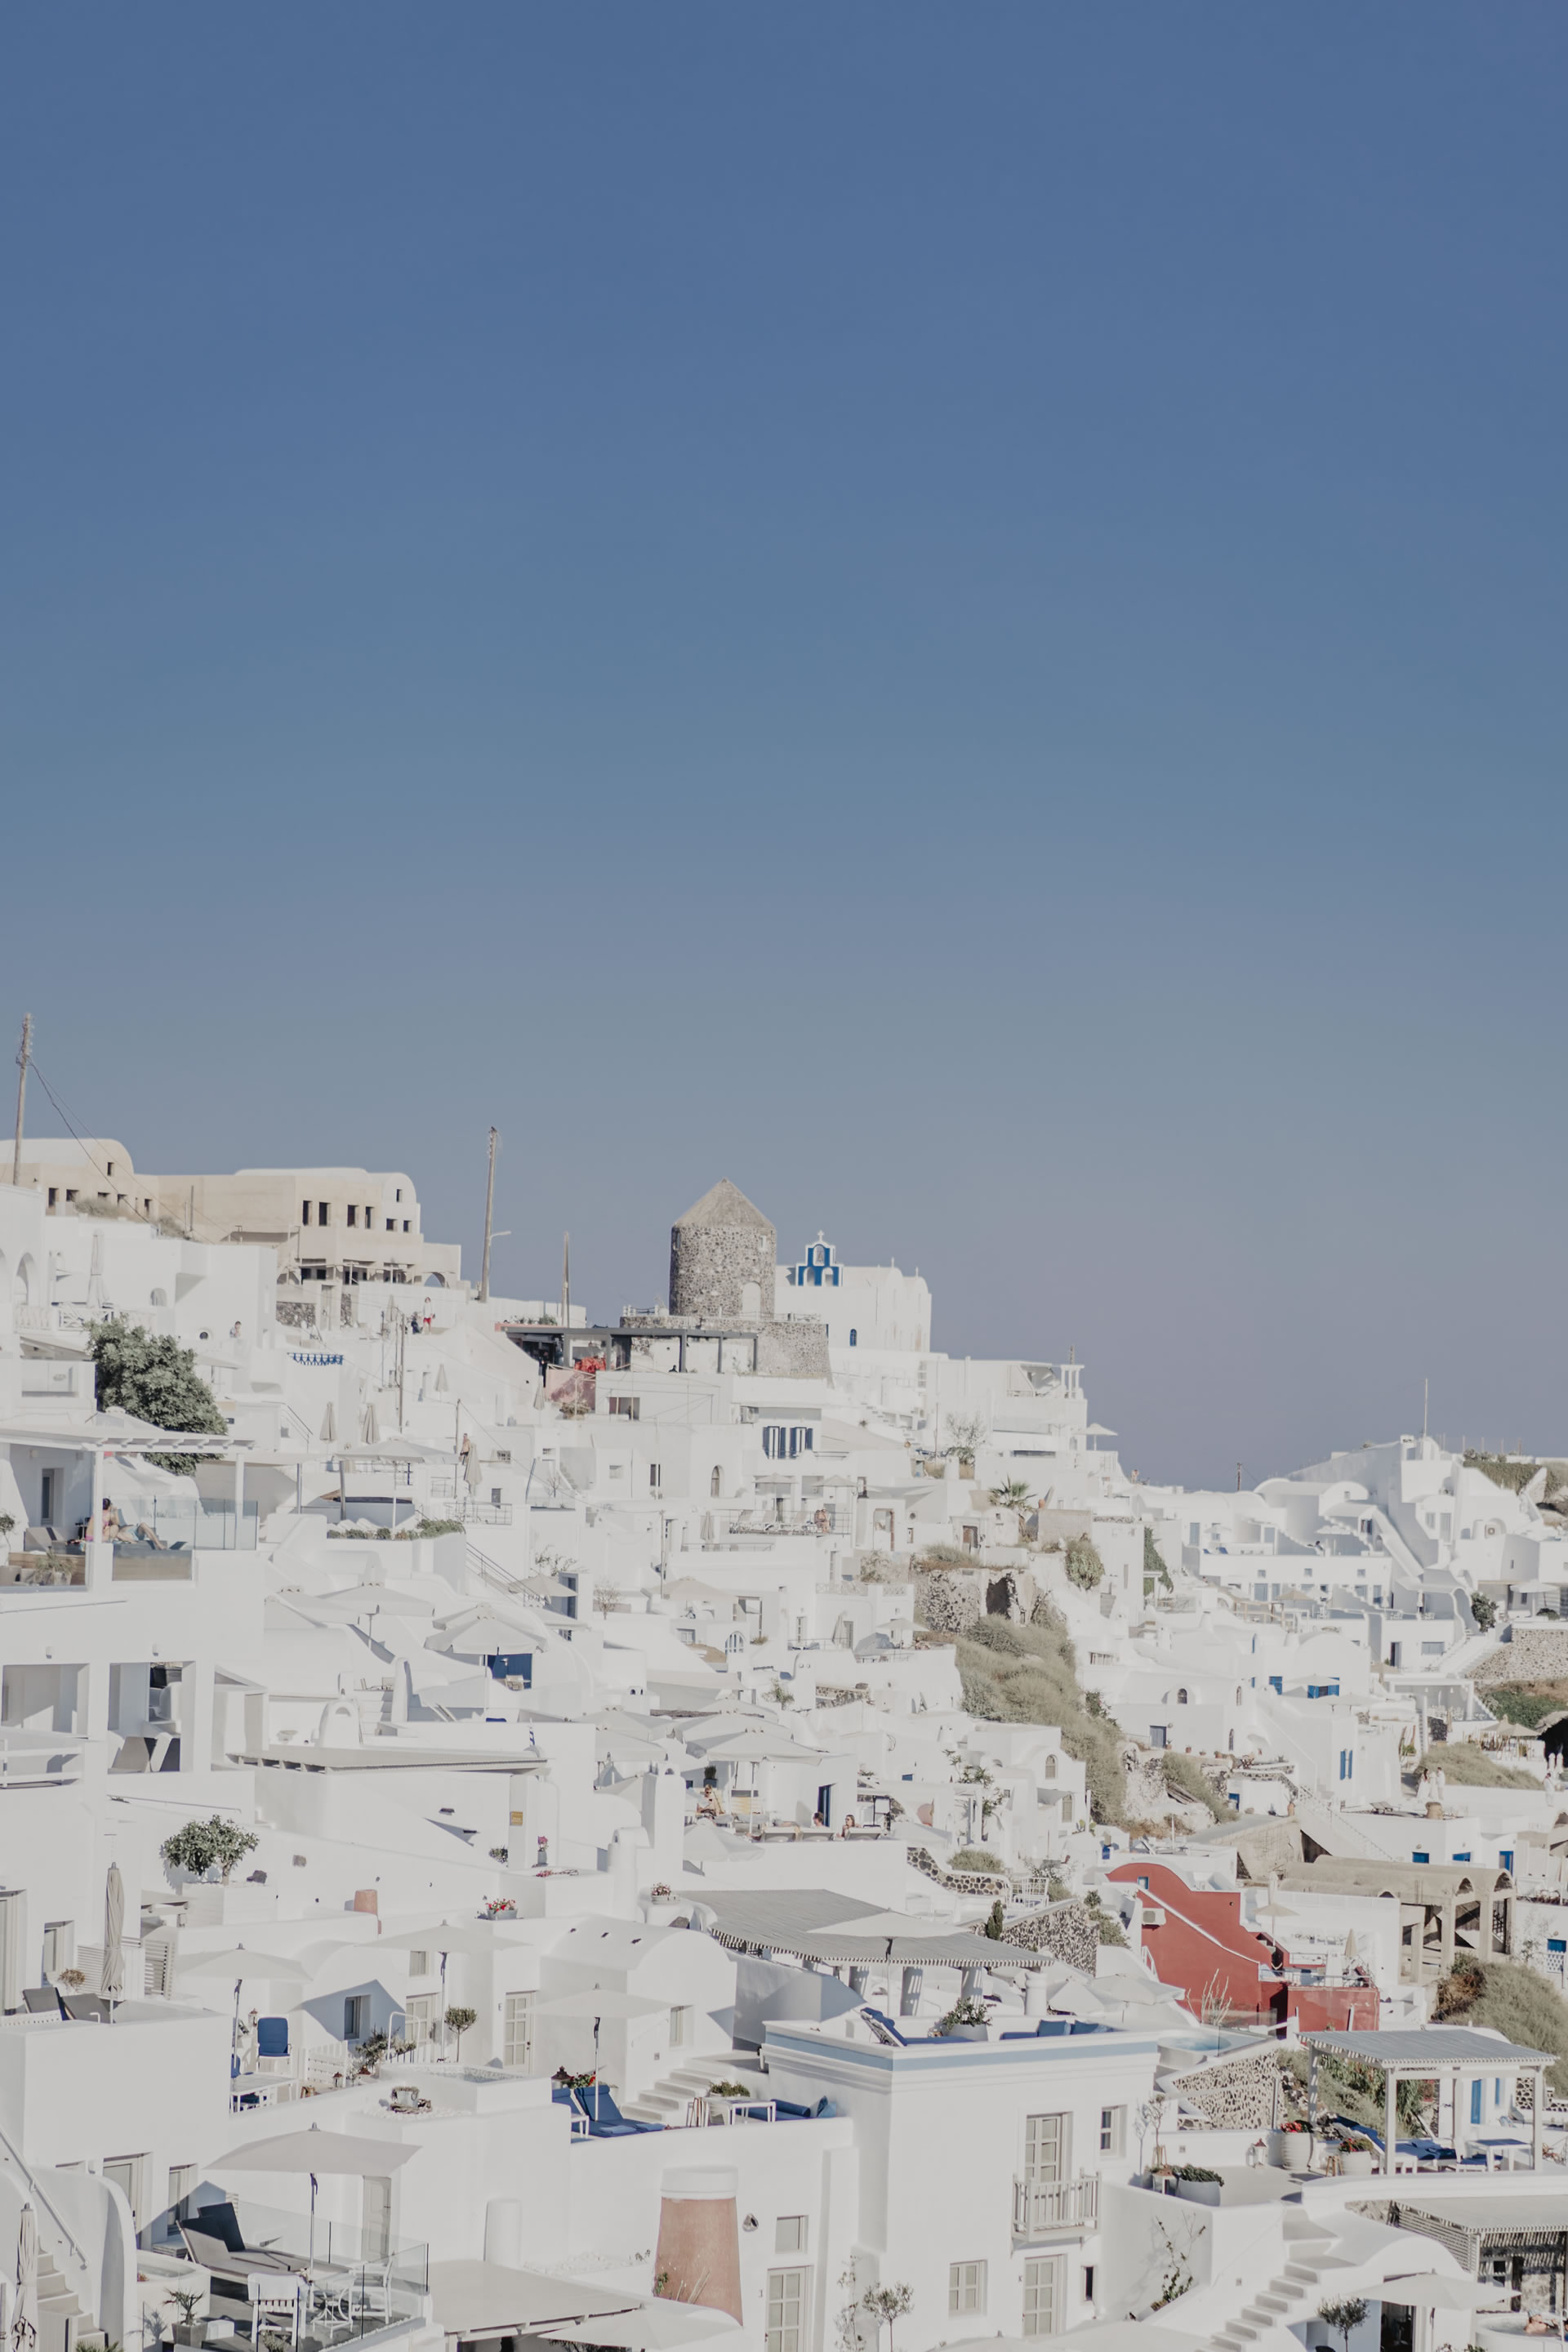 - 24 :: Santorini, a white wedding in a white island :: Luxury wedding photography - 23 ::  - 24